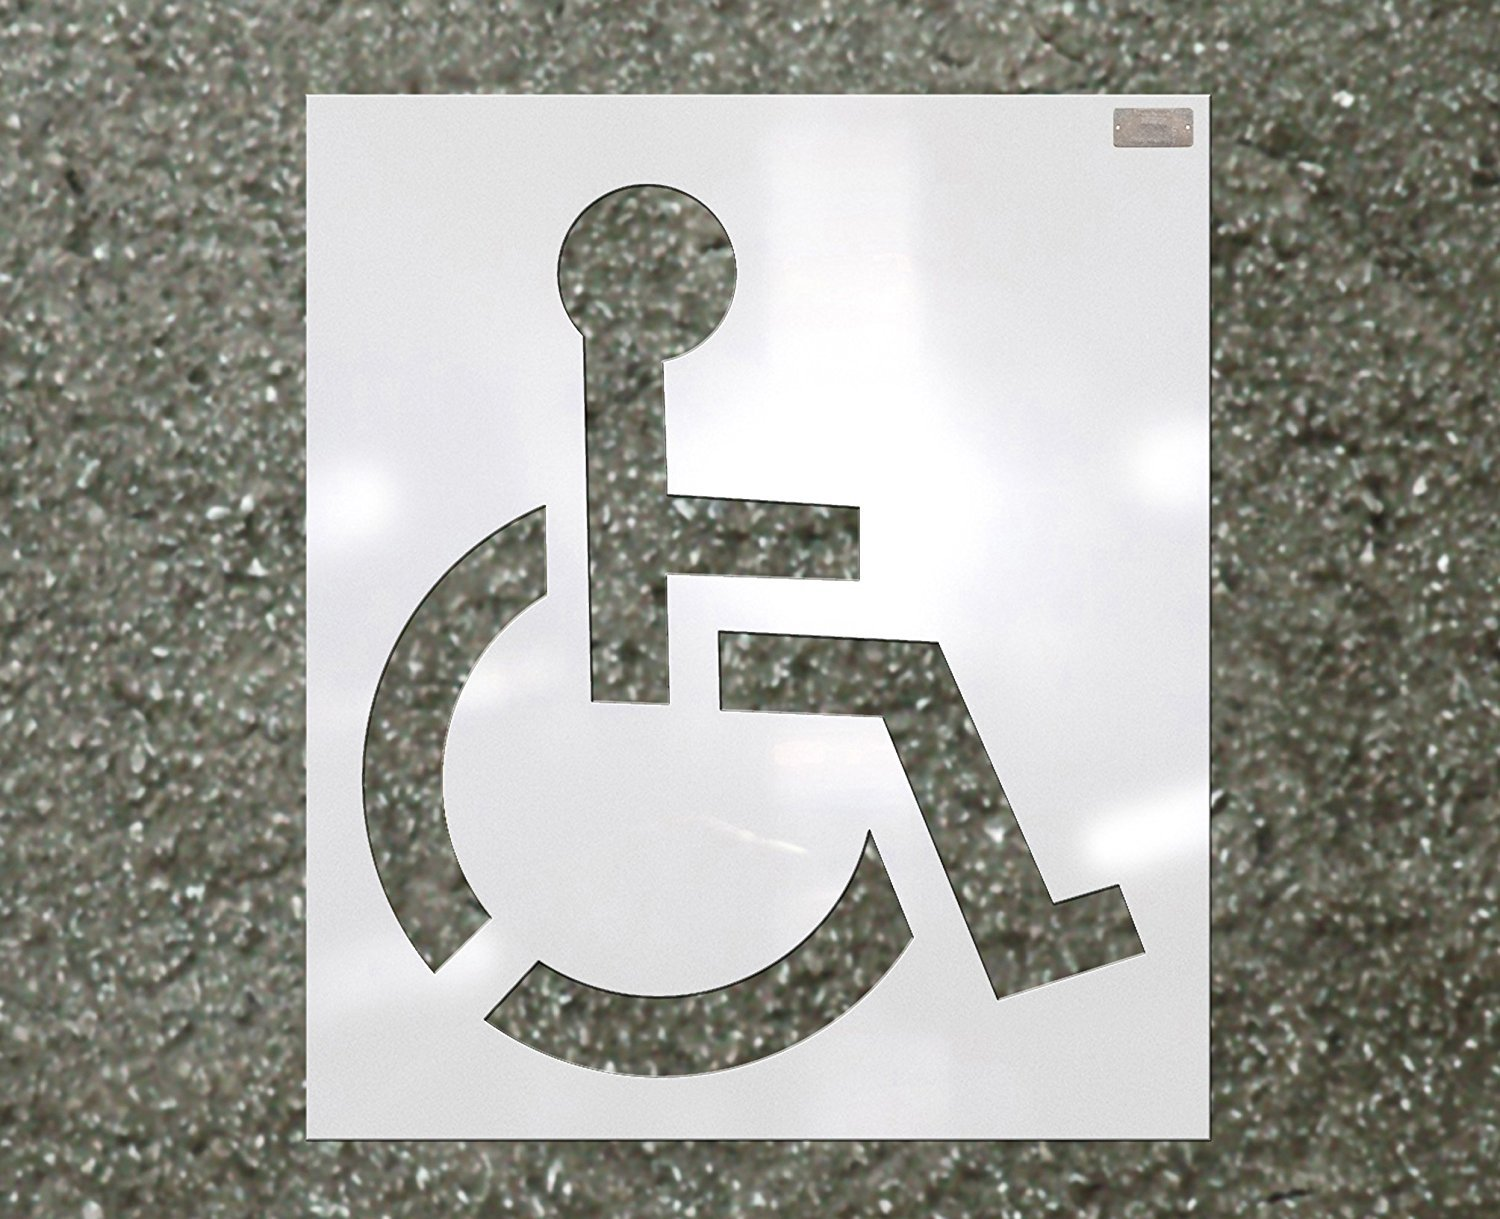 39'' HANDICAP Stencil, 1/16'' Plastic for use in Parking lot and roadway painting and striping by 1-800-Stencil